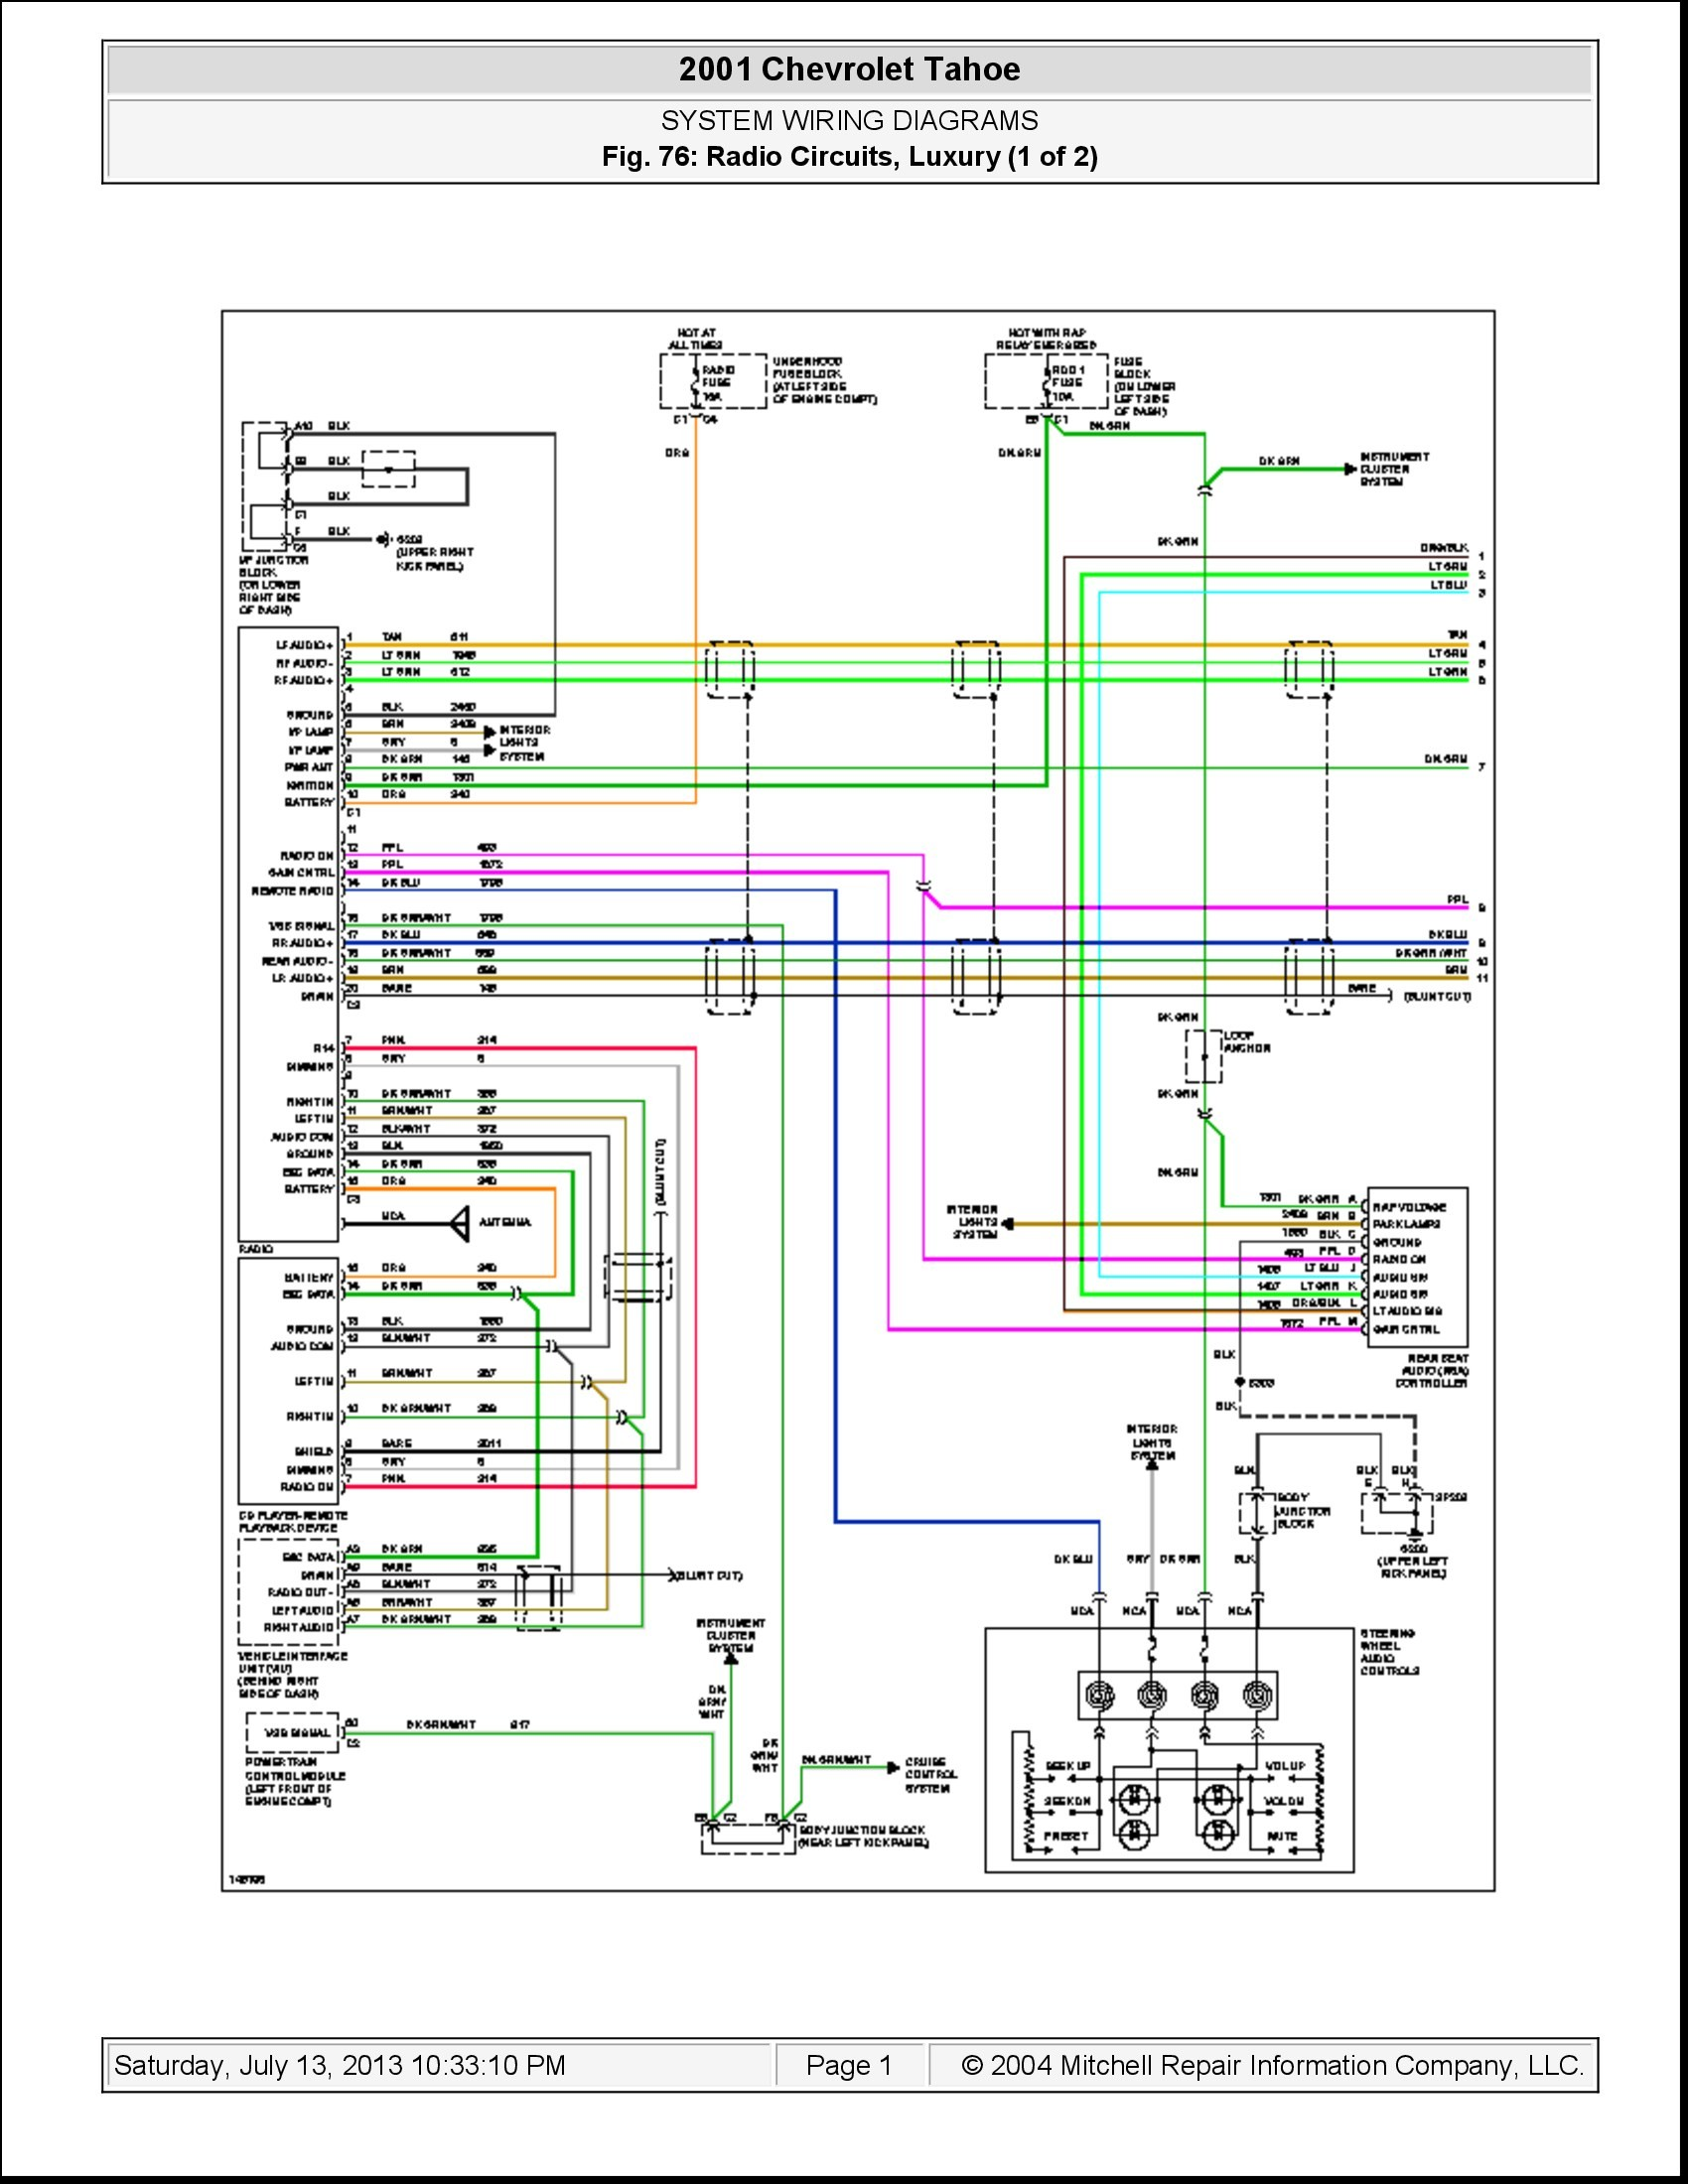 Chevy Suburban Radio Wiring Diagram Inspirational Car Chevrolet Suburban Wiring Schematic Gmc Suburban Wd I Of Chevy Suburban Radio Wiring Diagram on 2000 Malibu Stereo Wiring Diagram